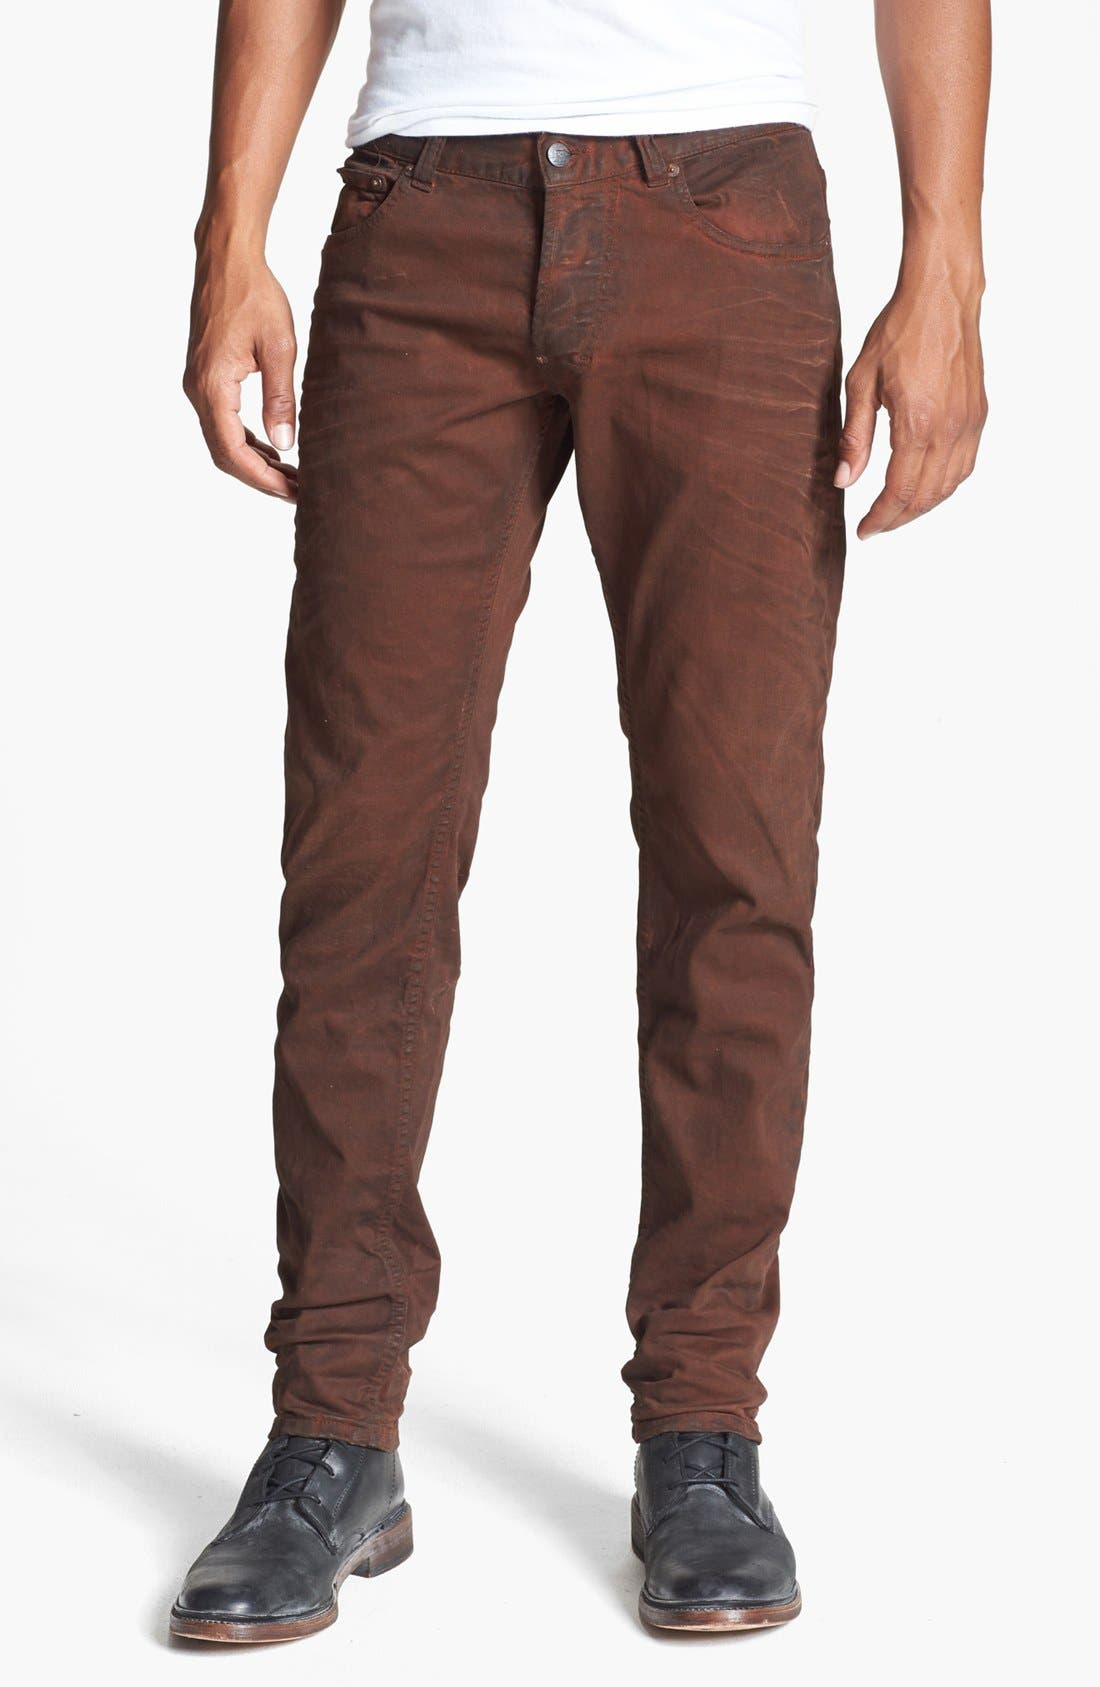 Alternate Image 1 Selected - Gilded Age 'Morrison' Coated Skinny Fit Jeans (Faded Brick)